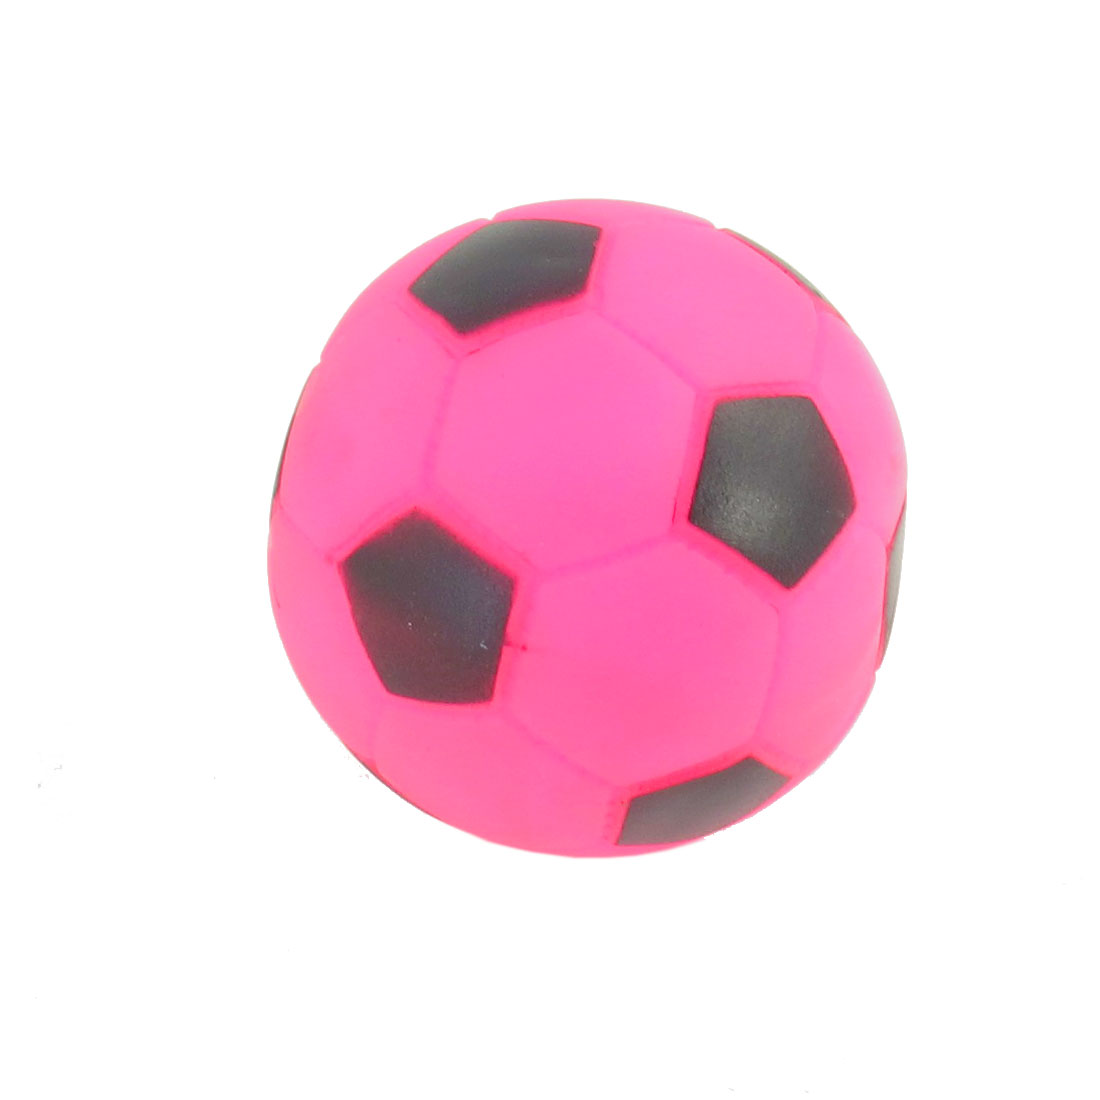 Fuchsia Vinyl Rubber Footable Design Squeaky Toy for Dogs